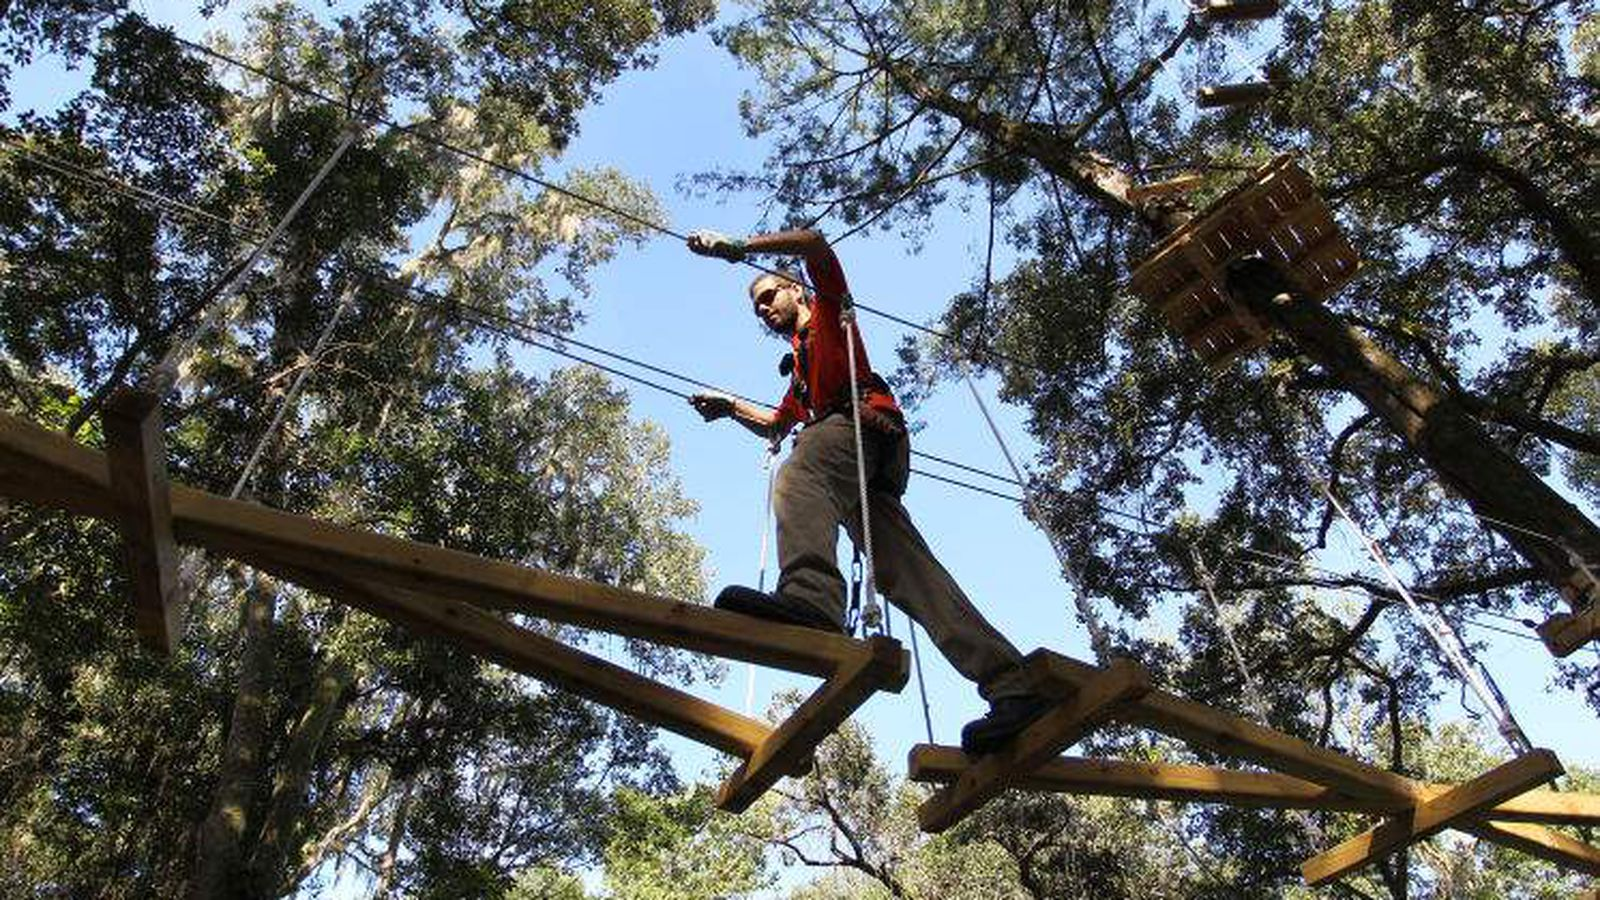 Treehoppers Aerial Adventure Park Opens Near Dade City